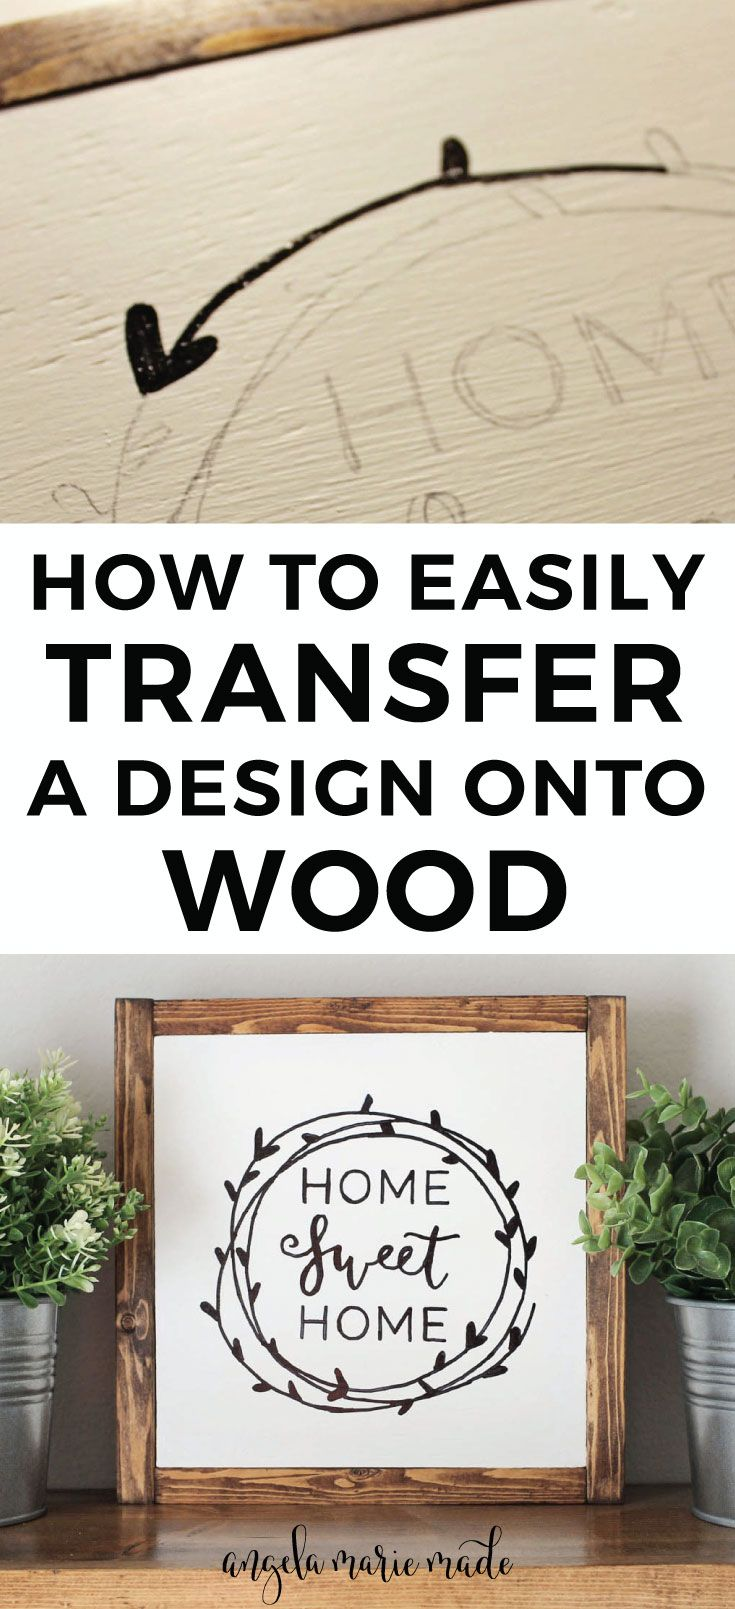 How to easily transfer a design onto wood home signsdiy